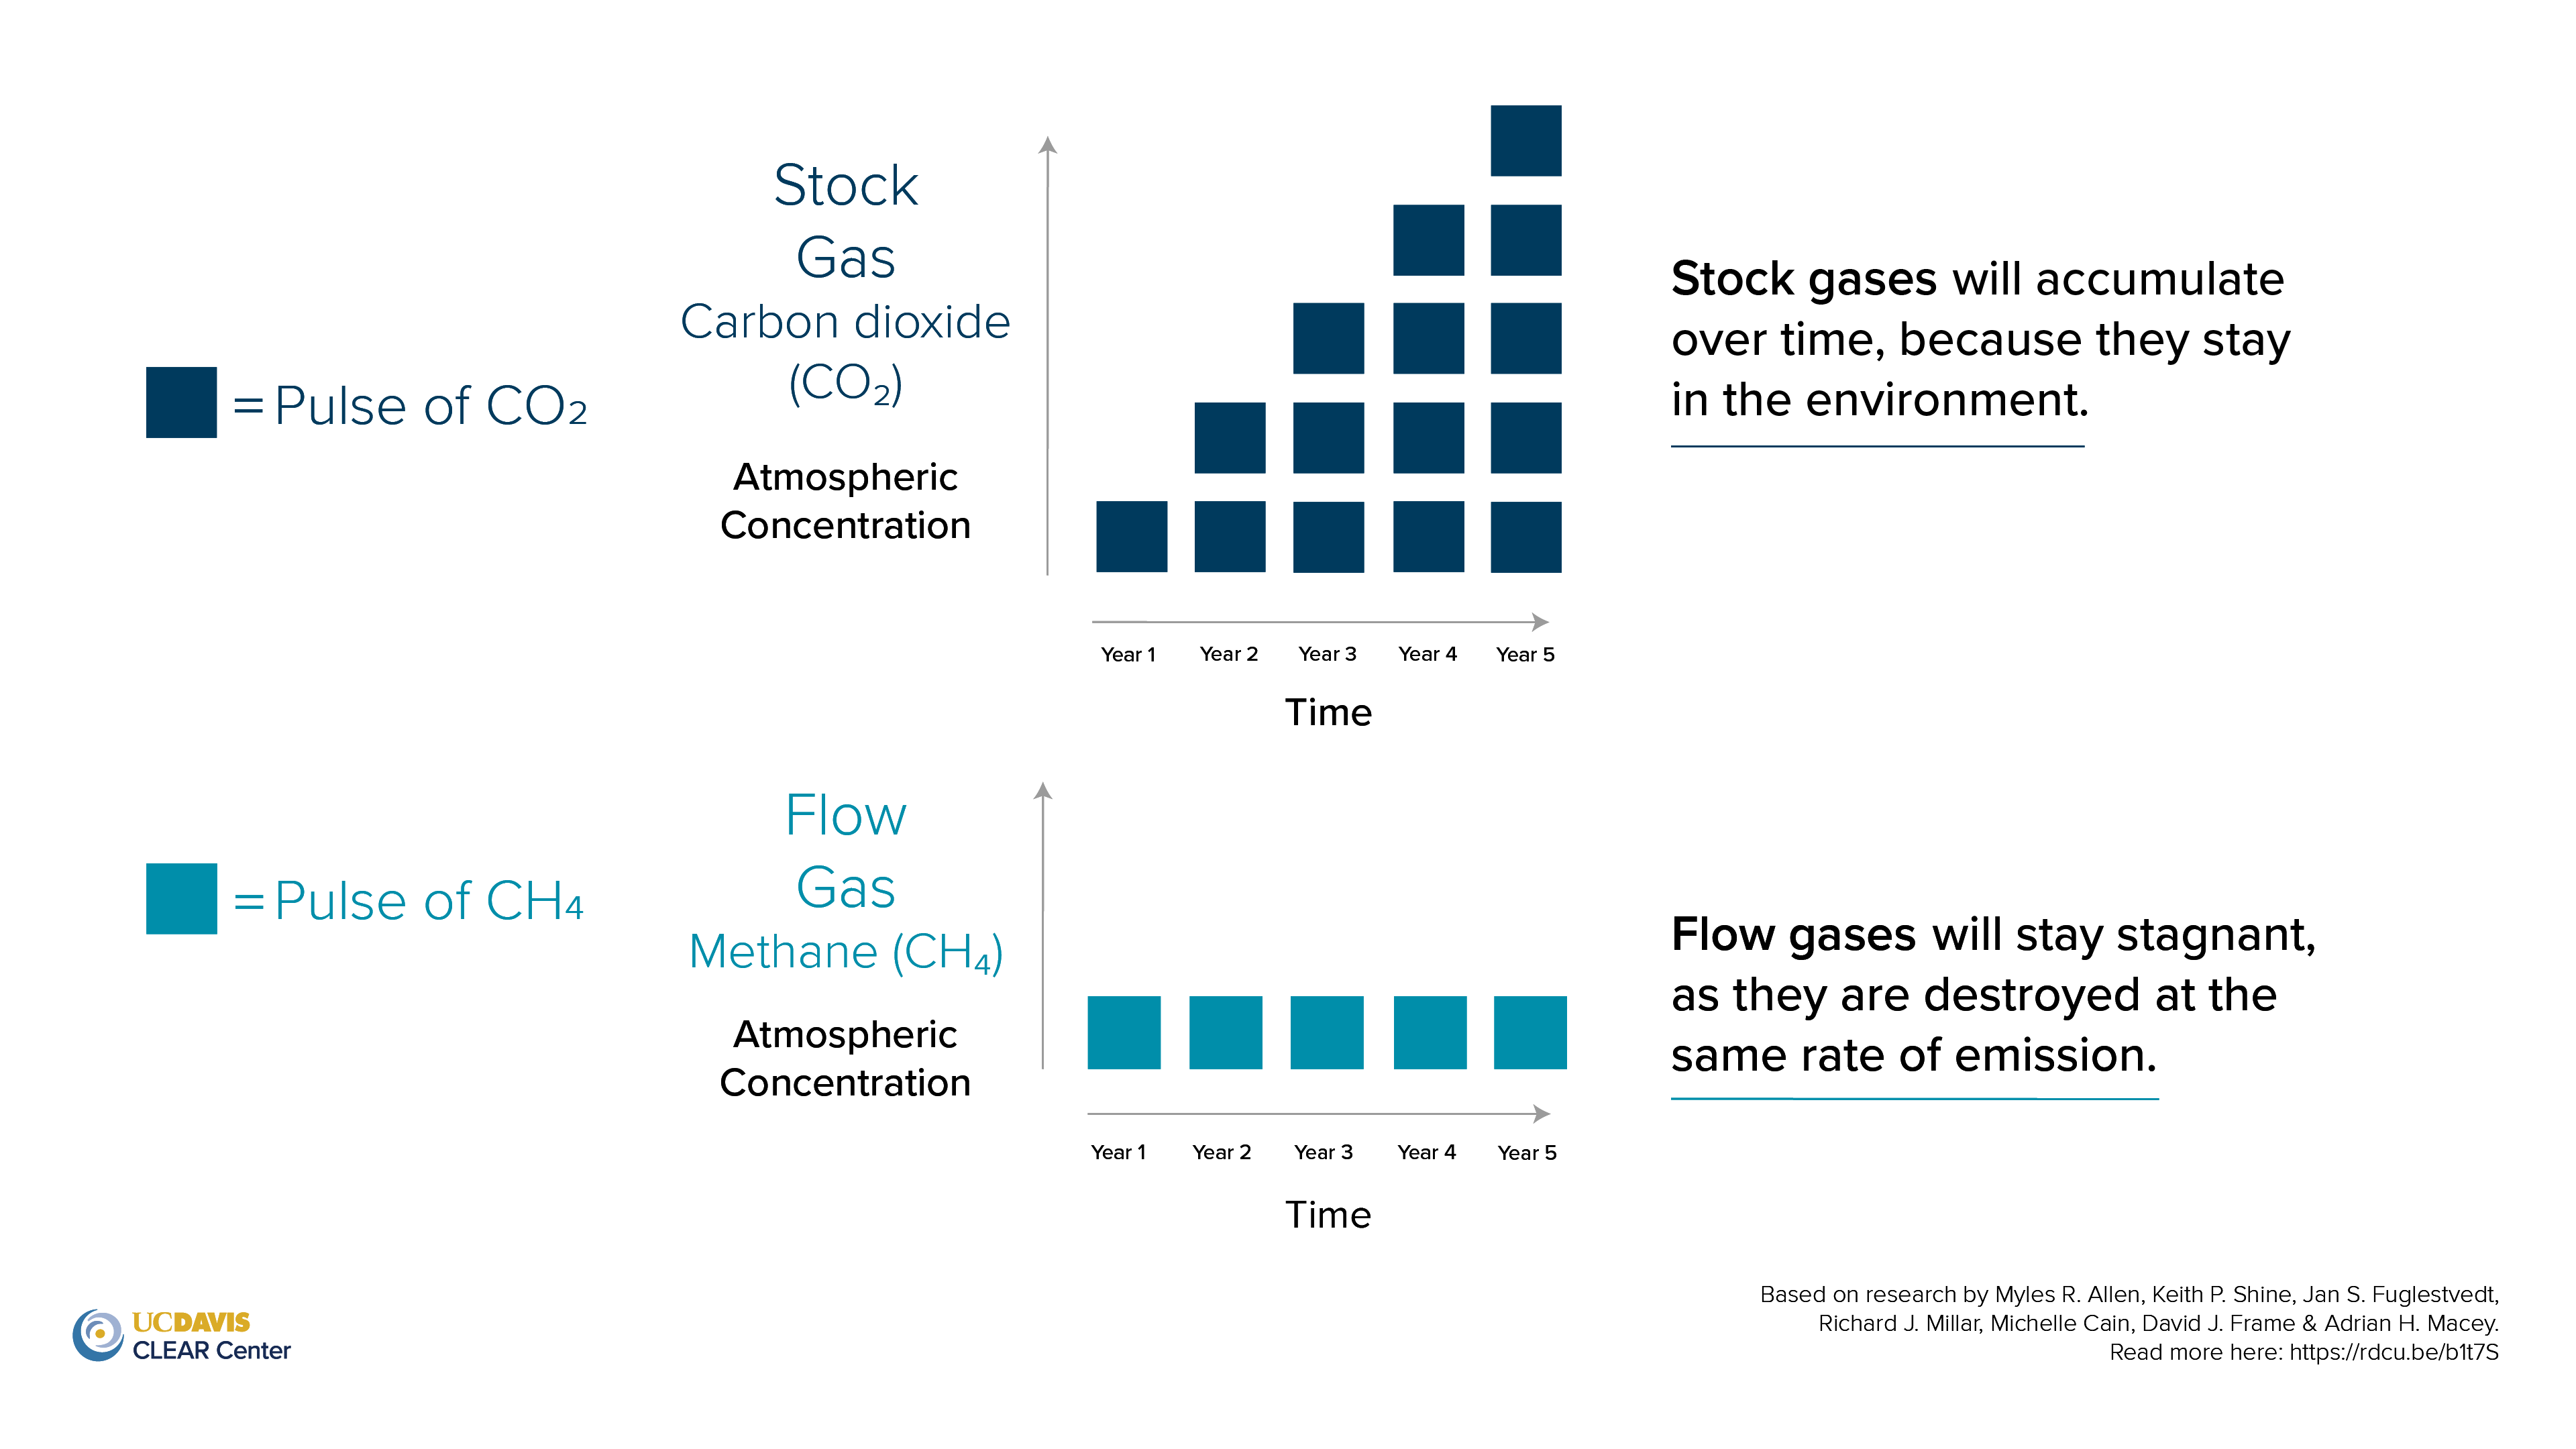 CLEAR Center Stock vs. Flow graphic